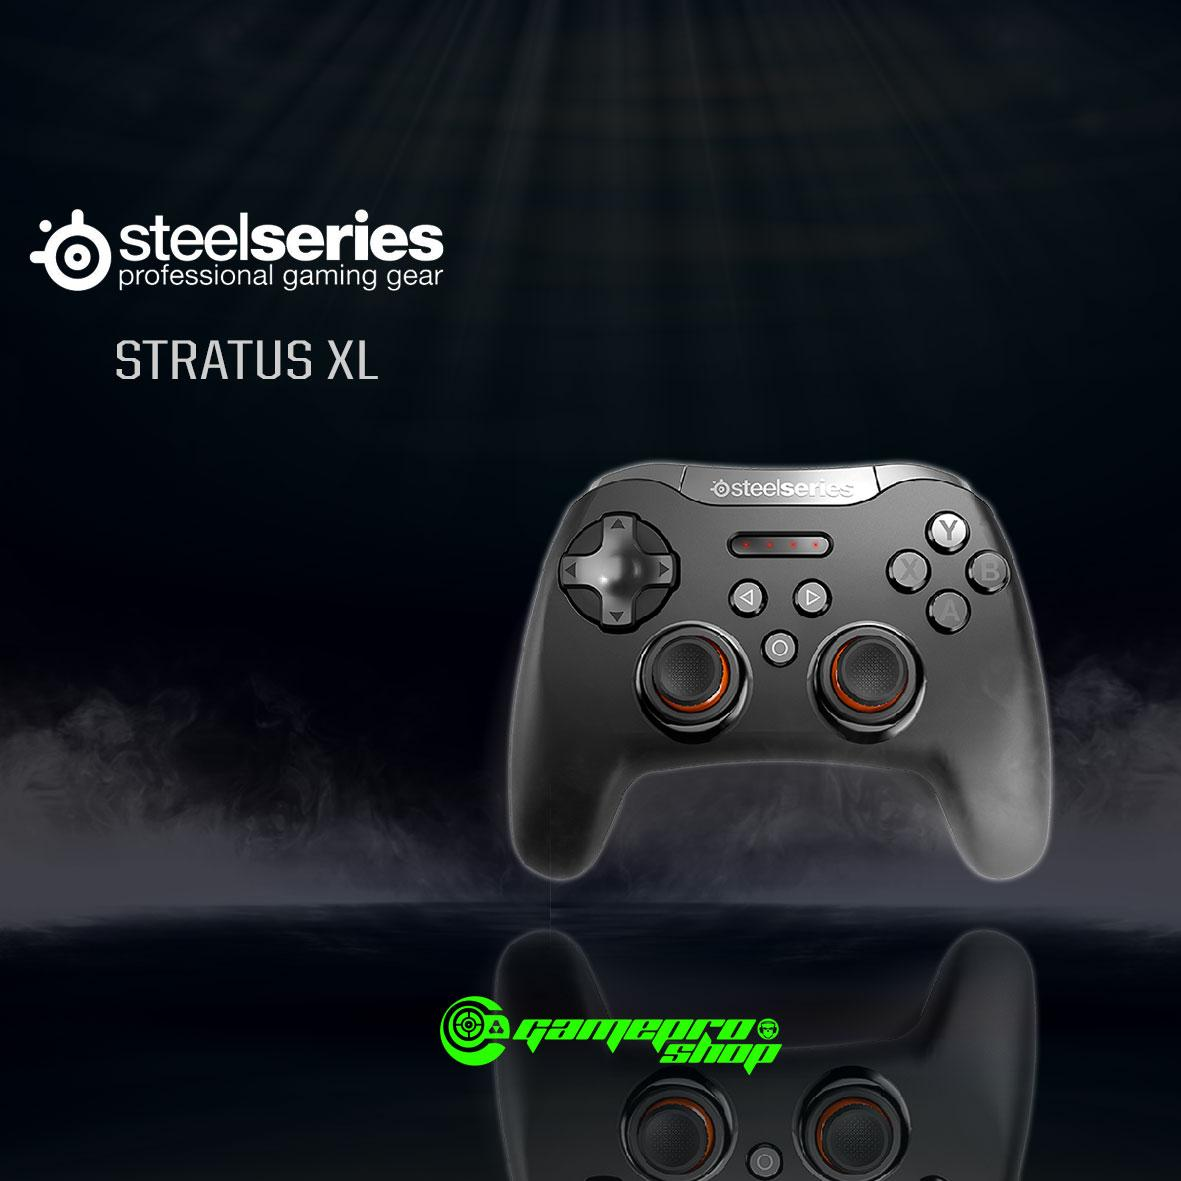 Steelseries Stratus XL for Android and PC *THE TECH SHOW PROMO*